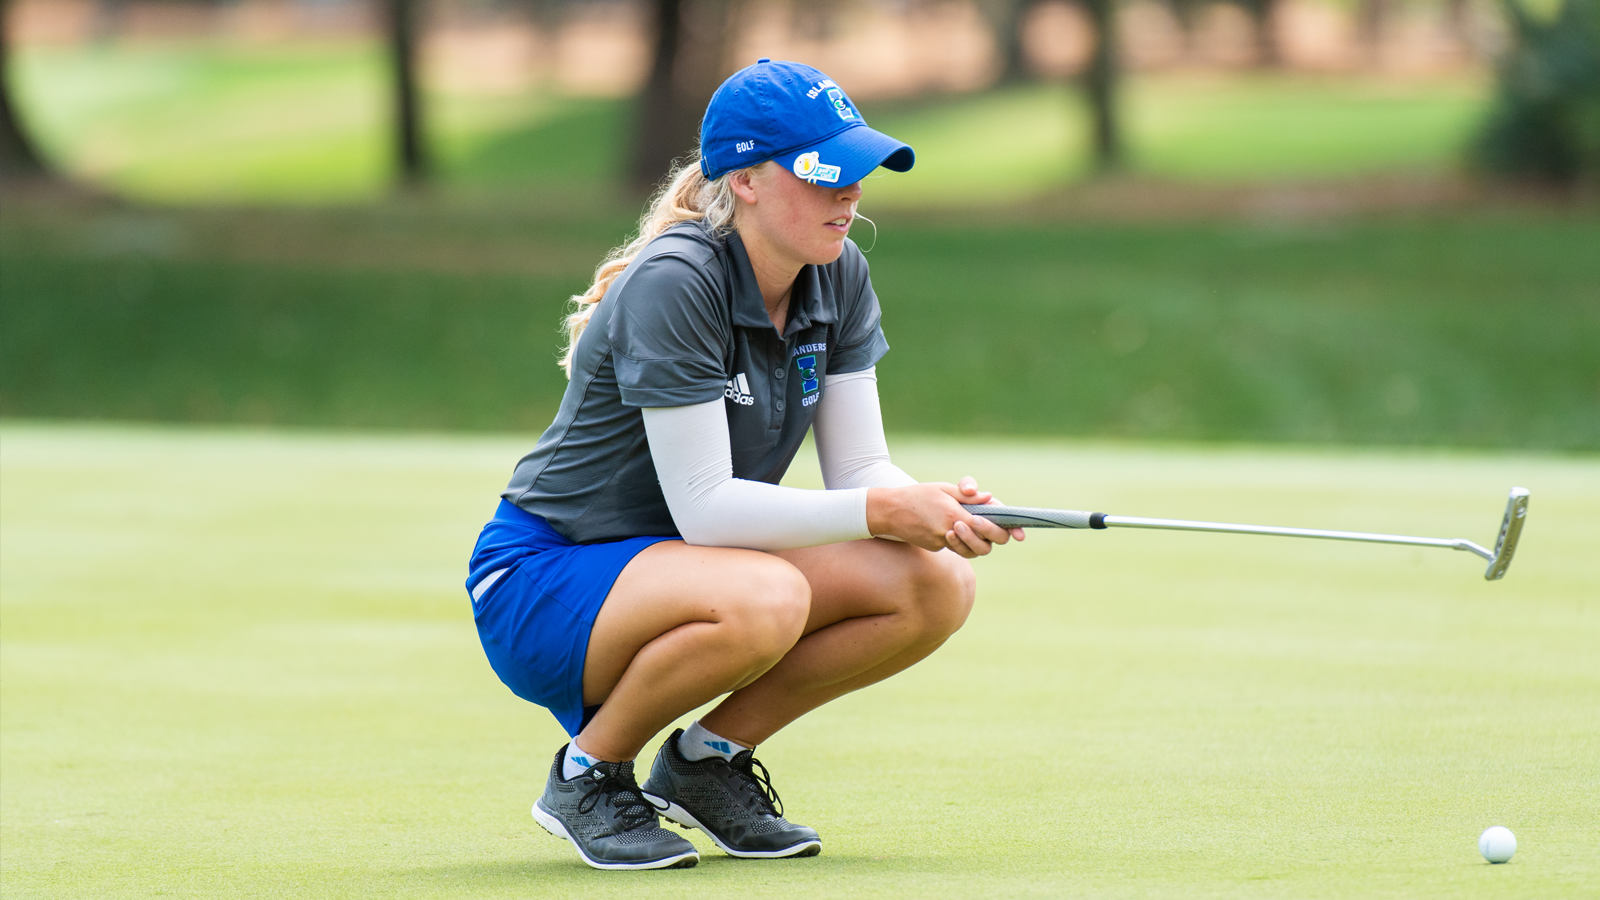 Kellsey Sample, of the Texas A&M Corpus Christi women's golf team, at round two of the 34th PGA WORKS Collegiate Championship.